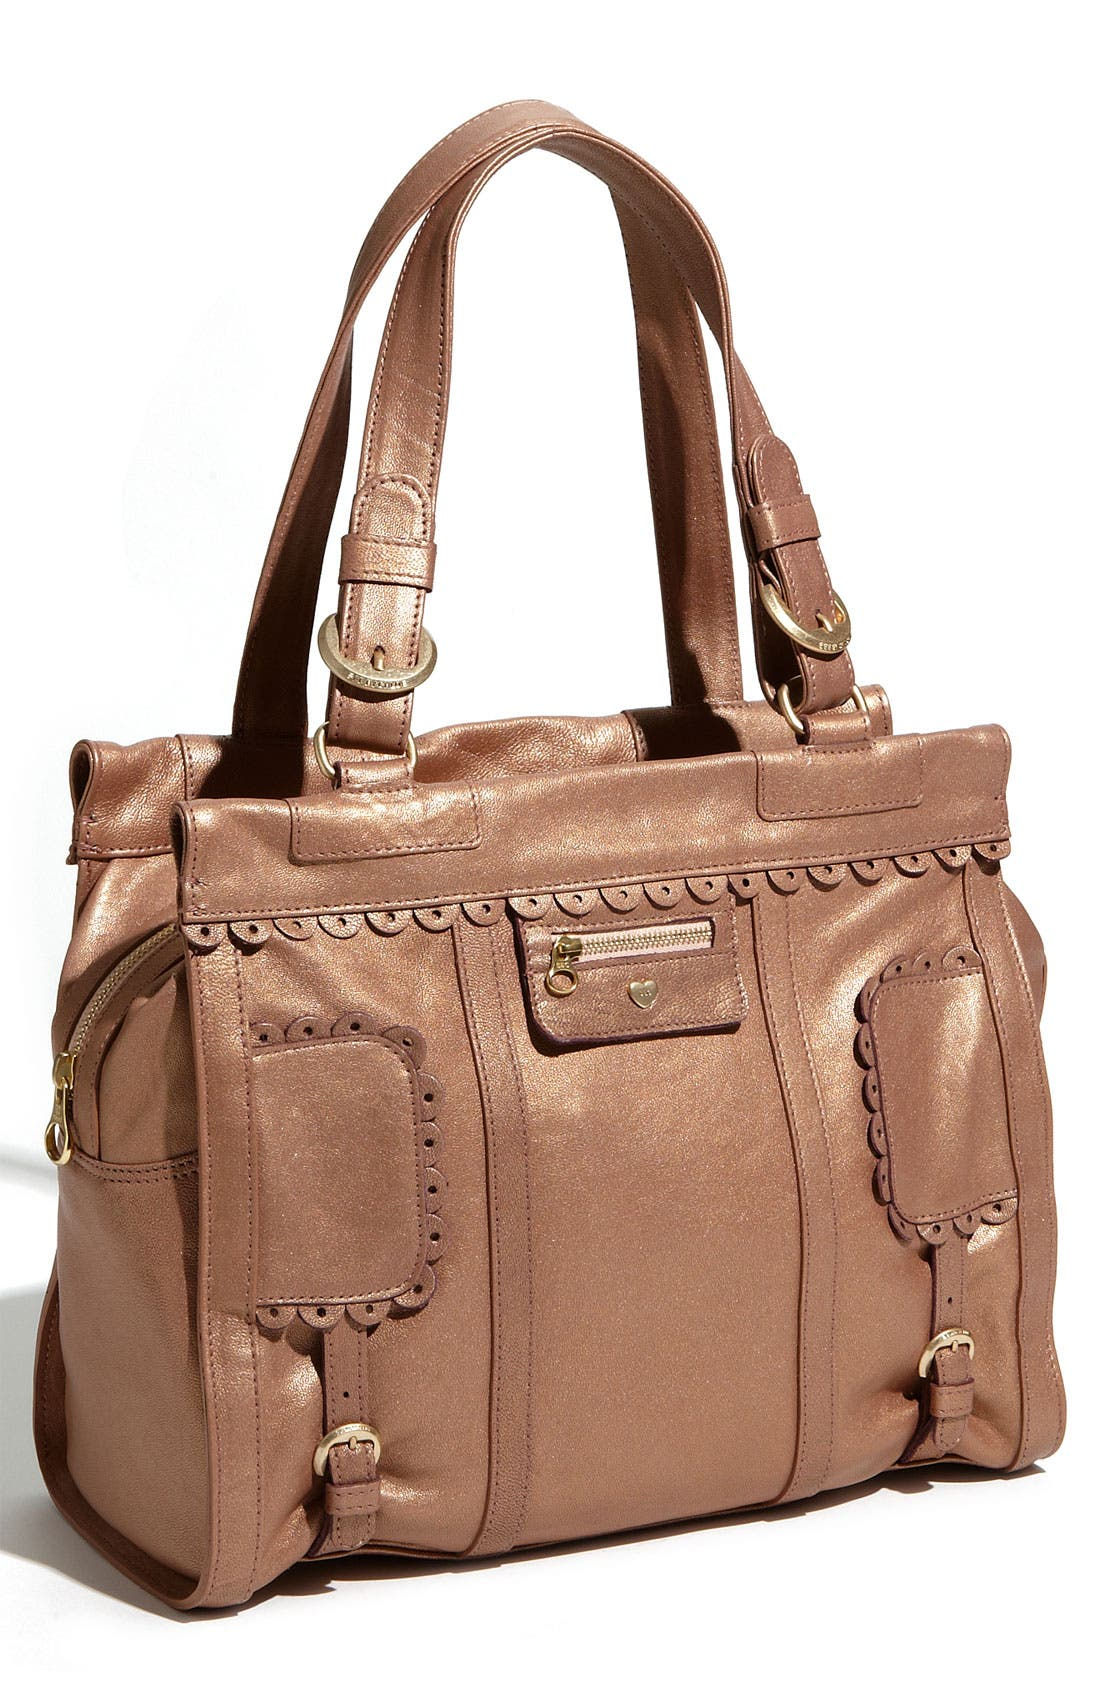 Main Image - See By Chloé 'Poya Metallic Vintage' Leather Shoulder Bag